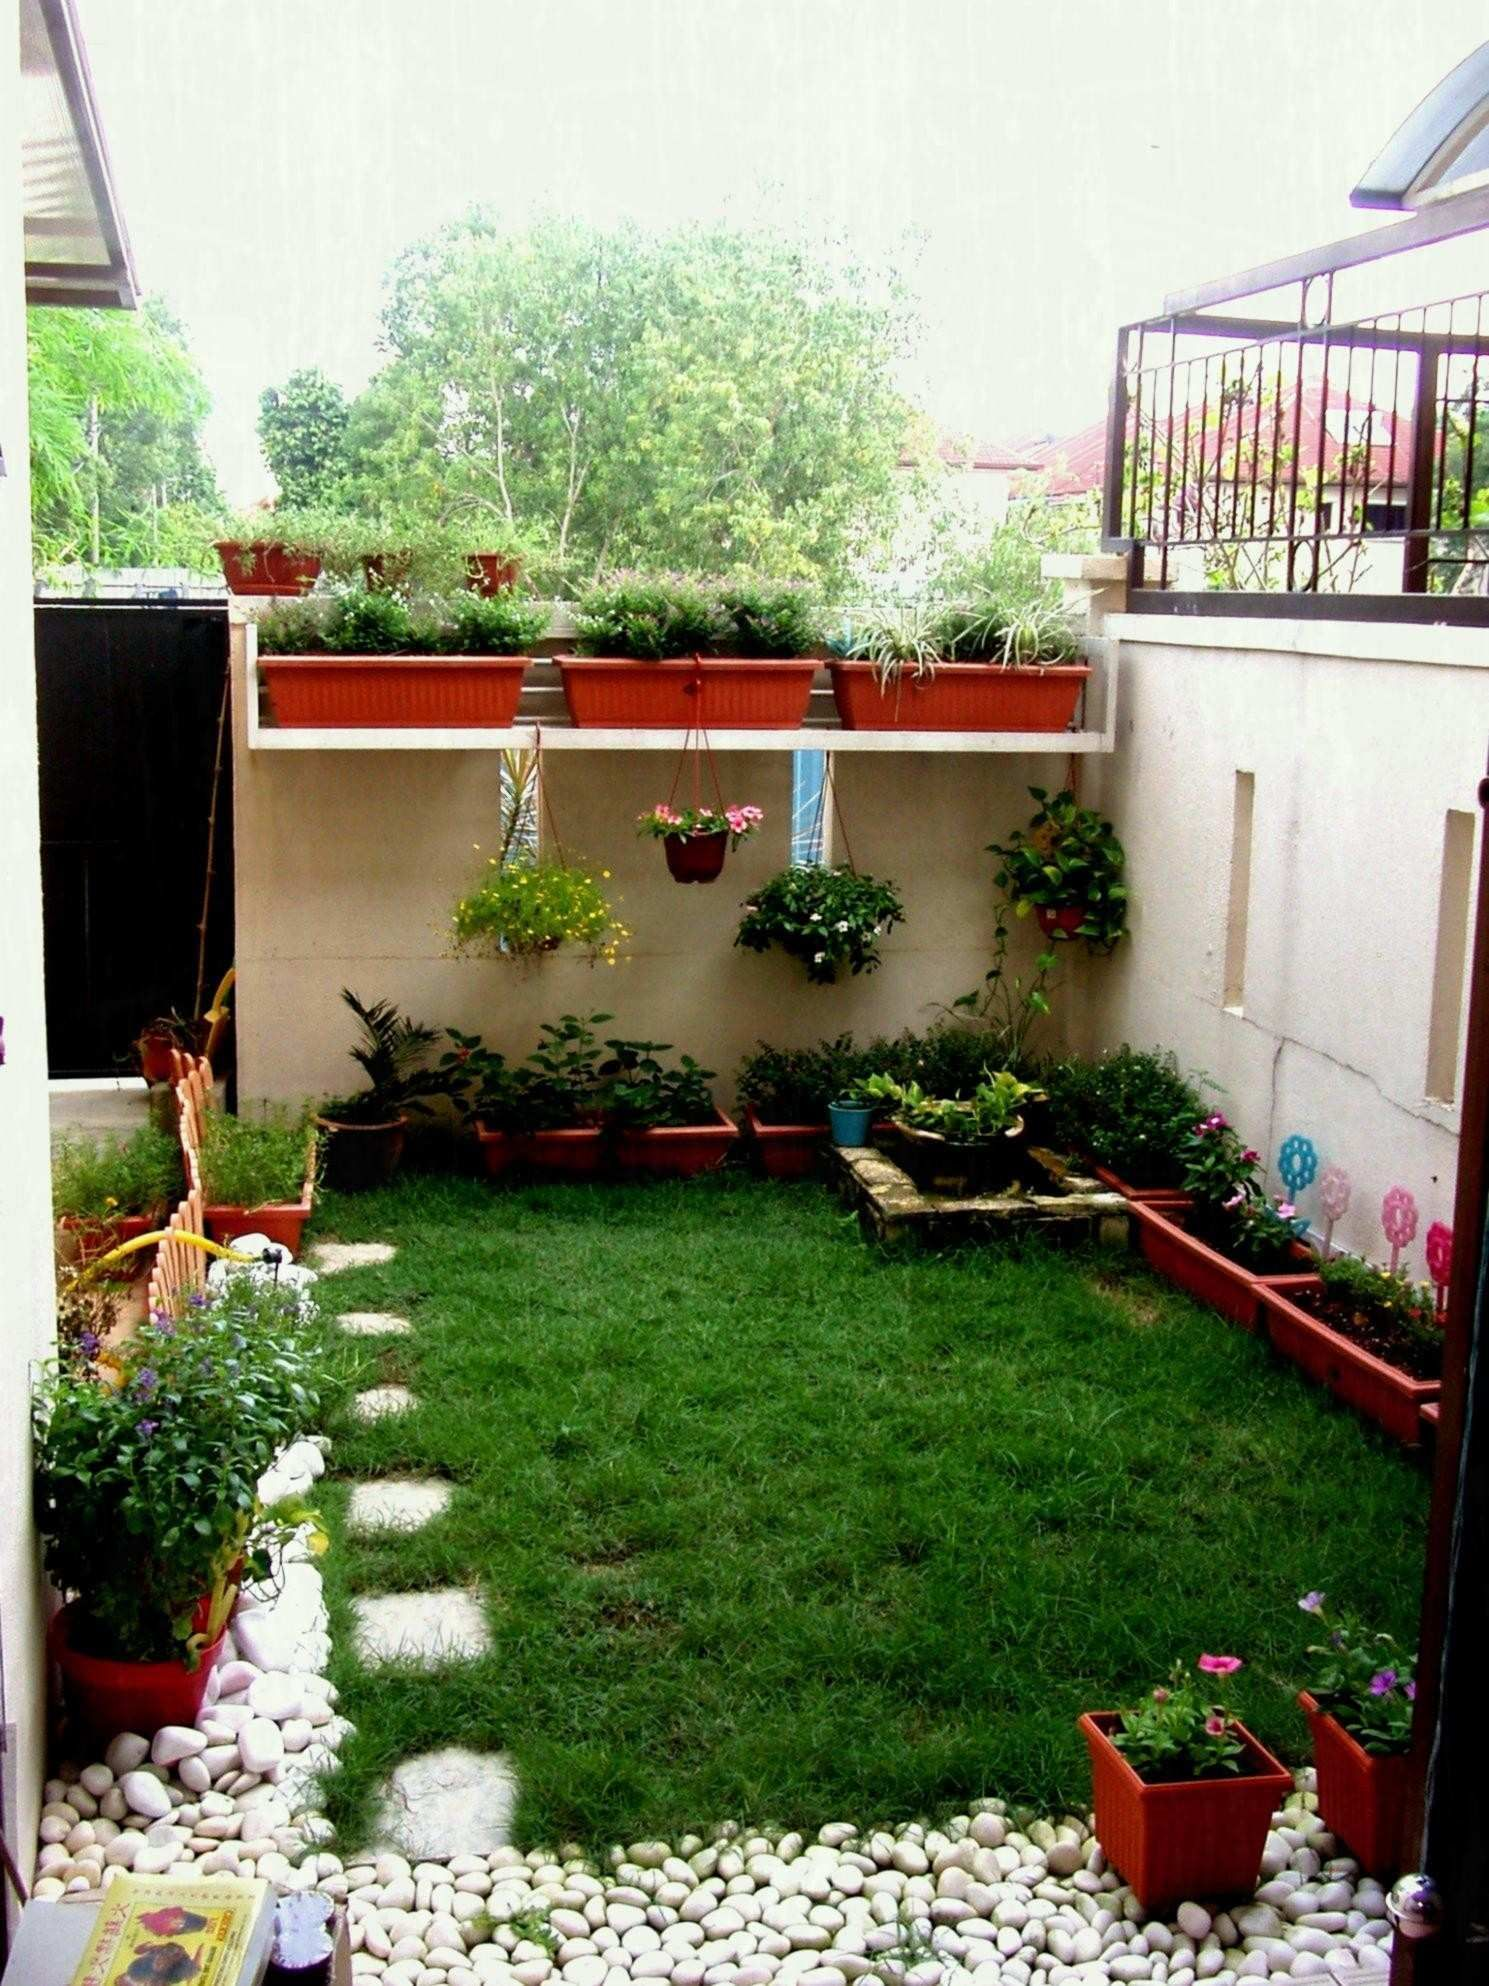 Apartment Patio Garden Ideas Luxury For Small Balcony, 10